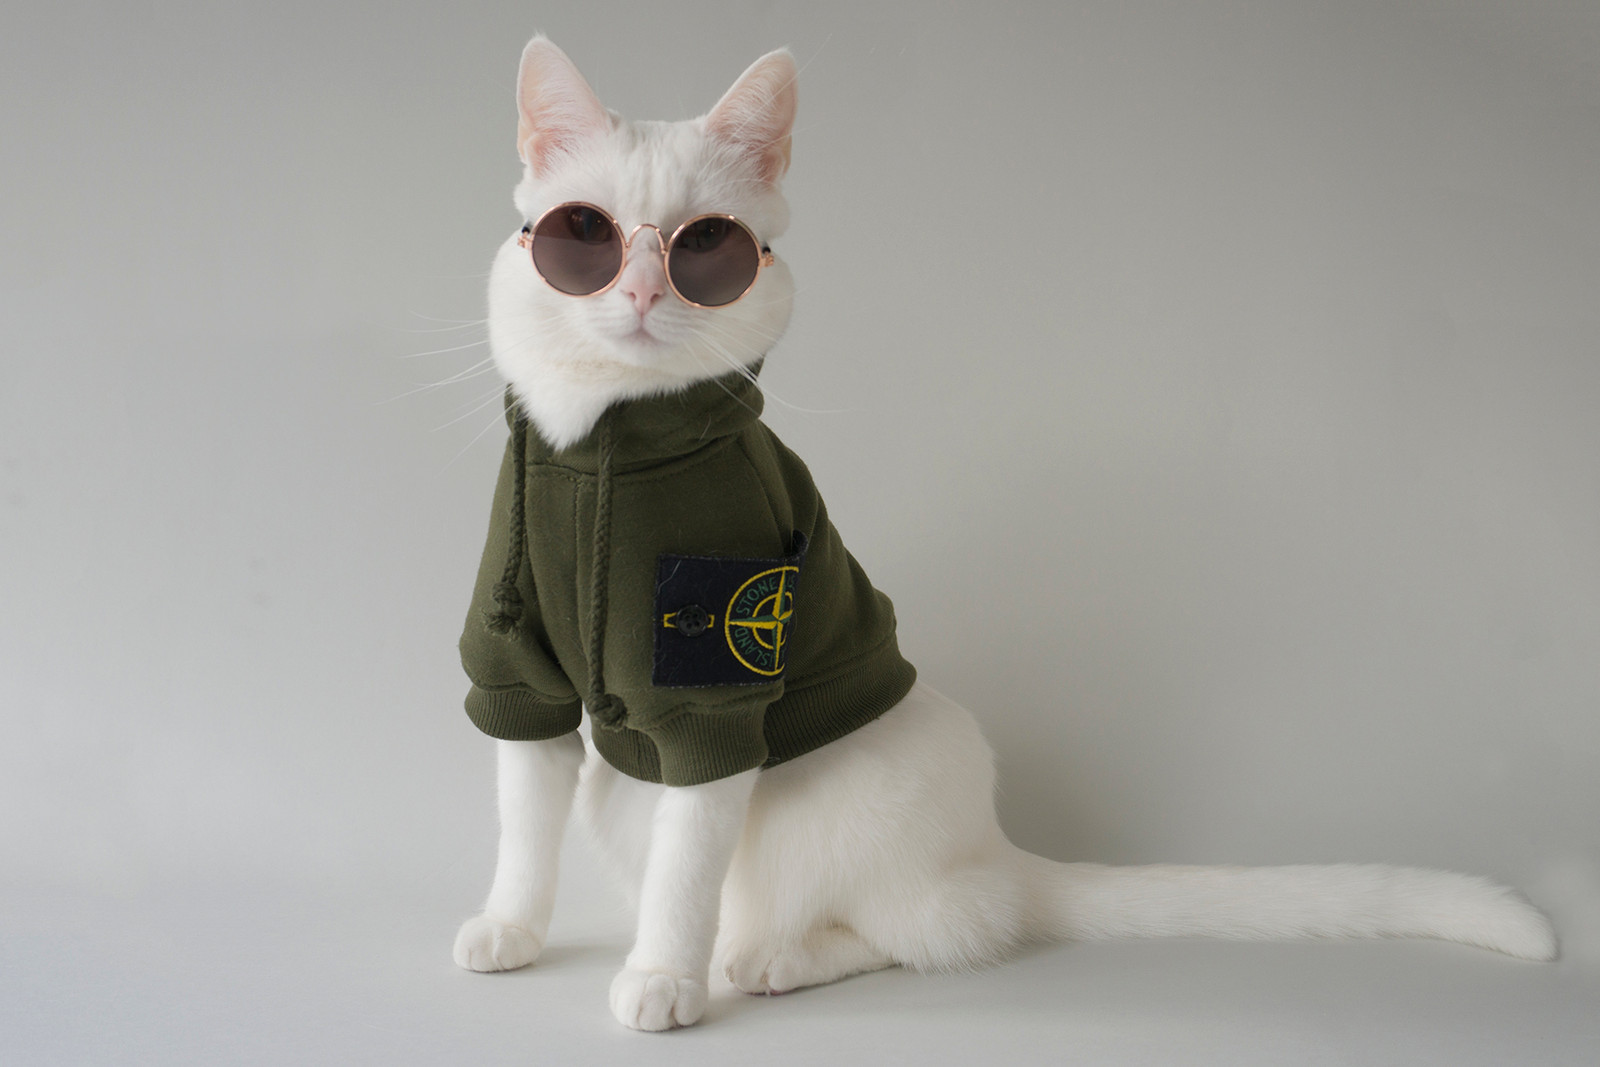 Zappa the Cat Instagram Hyped Hypebae Hypebeast Pet Supreme Stussy Off White Virgil Abloh Vetements Raincoat Hoodie Carhartt Stone Island Vans Video Interview Rotterdam